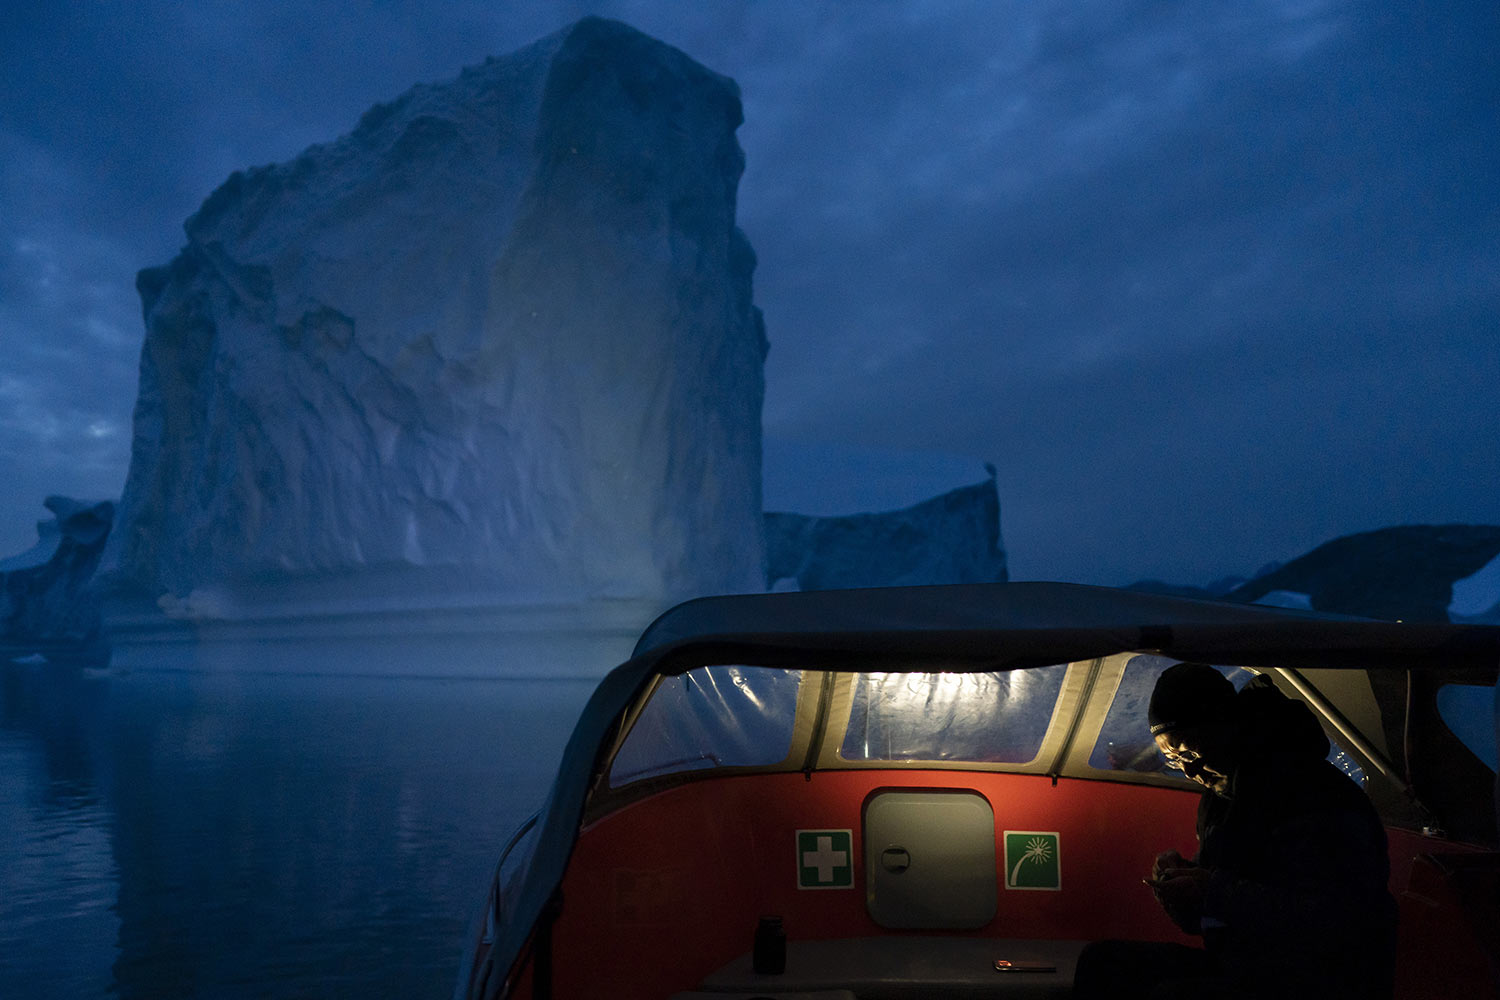 A boat navigates at night next to a large iceberg on Aug. 15, 2019, in eastern Greenland. Summer 2019 is hitting Greenland hard with record-shattering heat and extreme melt. By the end of the summer, about 440 billion tons (400 billion metric tons) of ice, maybe more, will have melted or calved off Greenland's giant ice sheet, scientists estimate. (AP Photo/Felipe Dana)